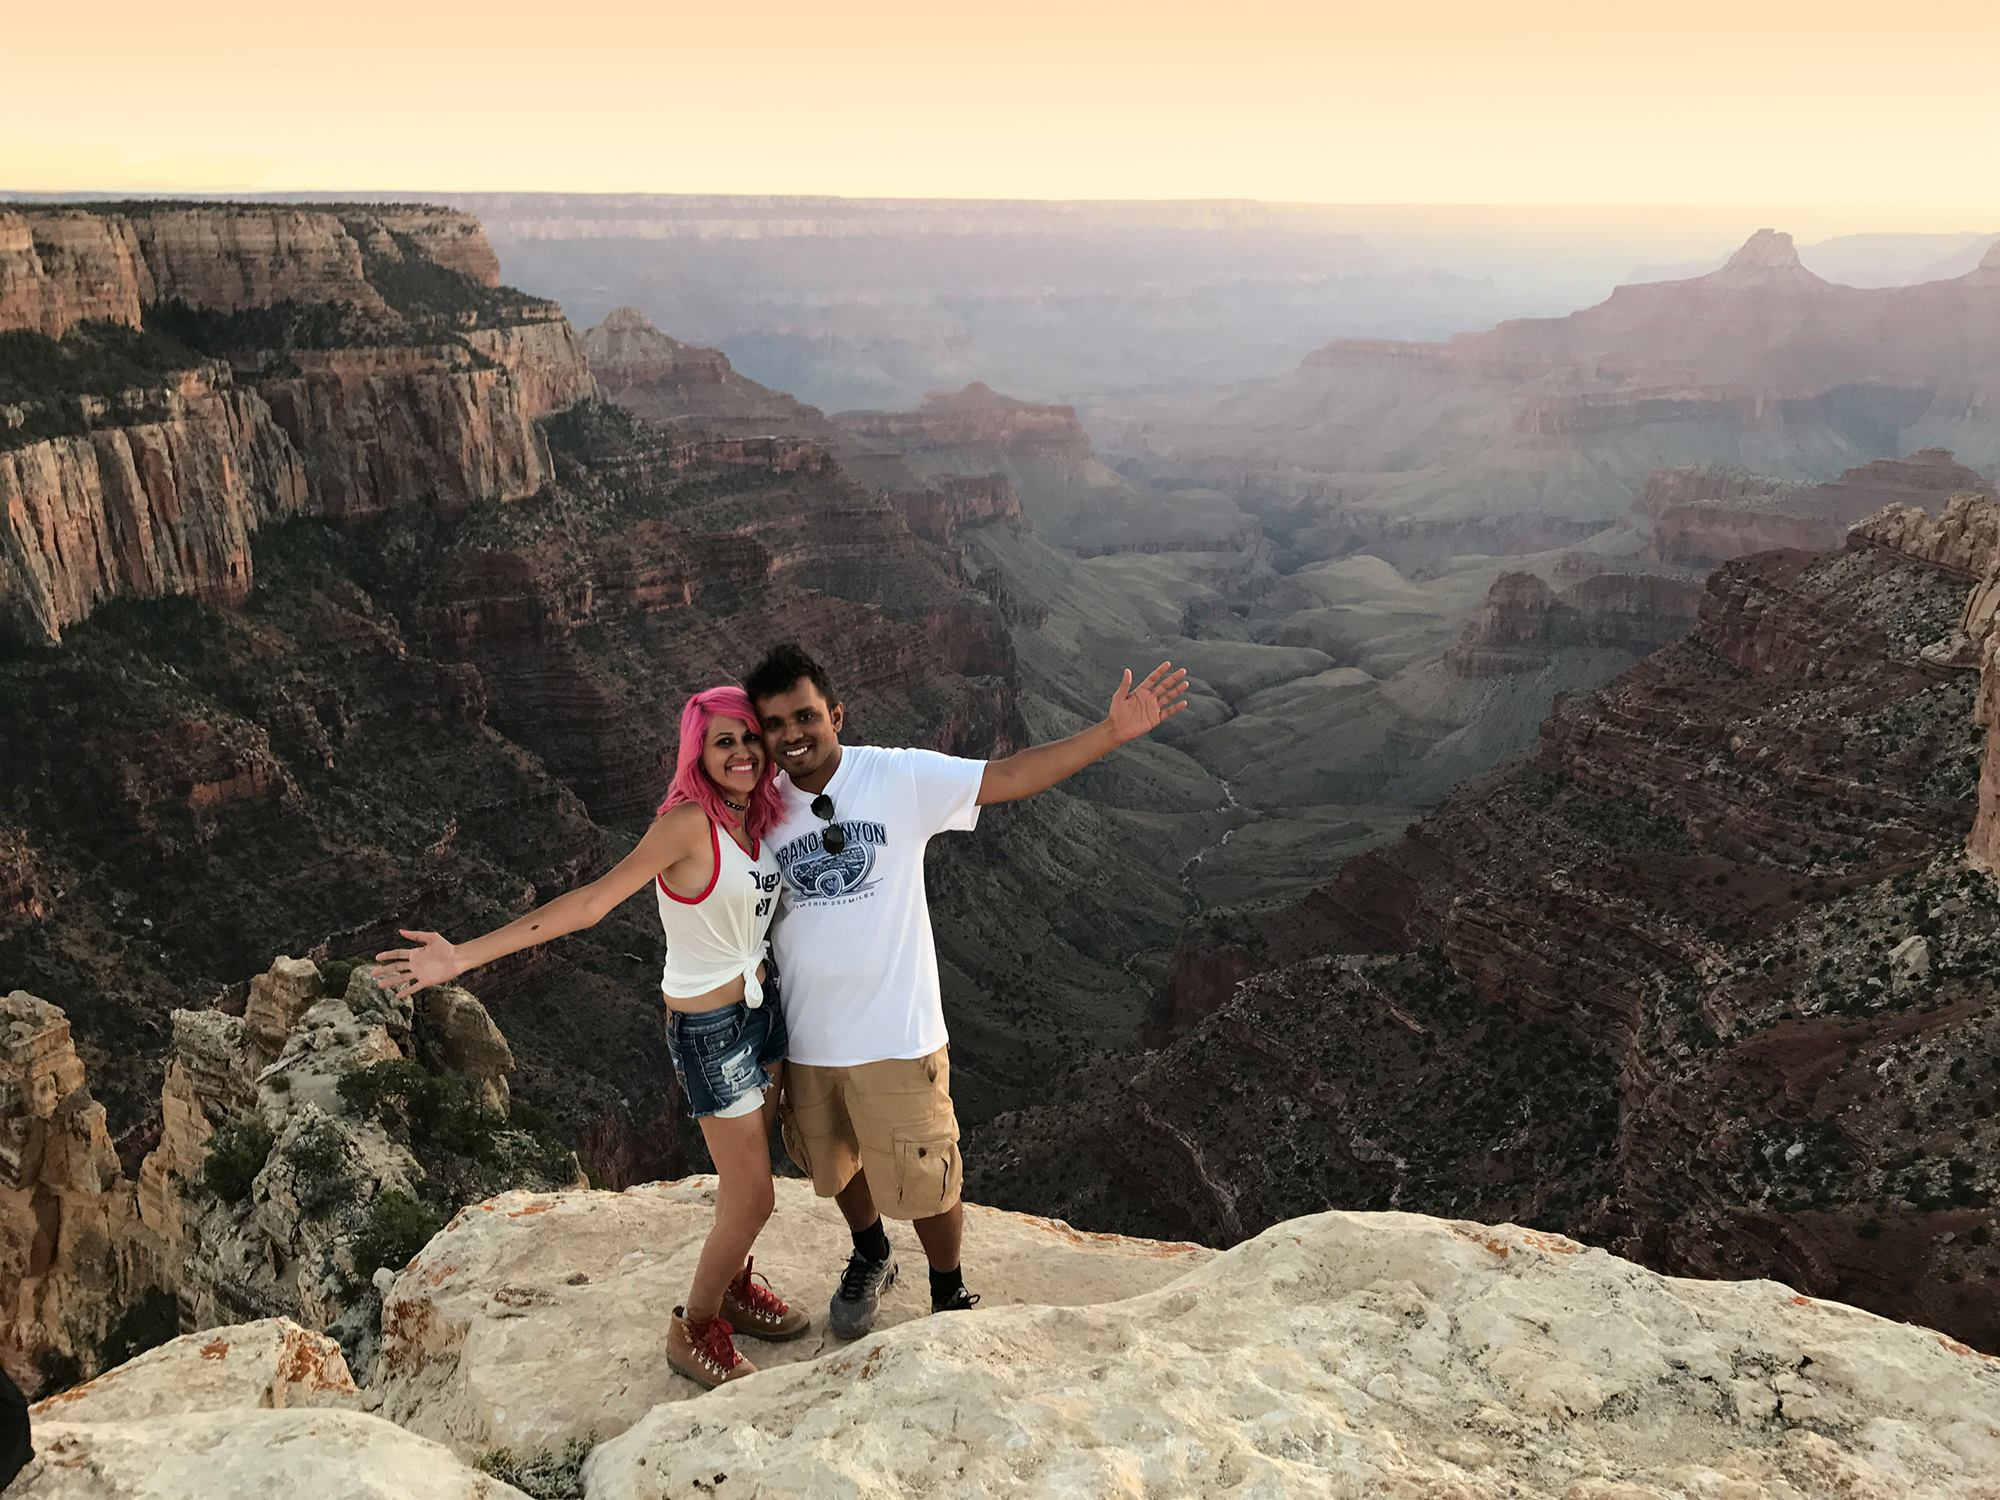 Couple Intoxicated During Fatal Yosemite Fall